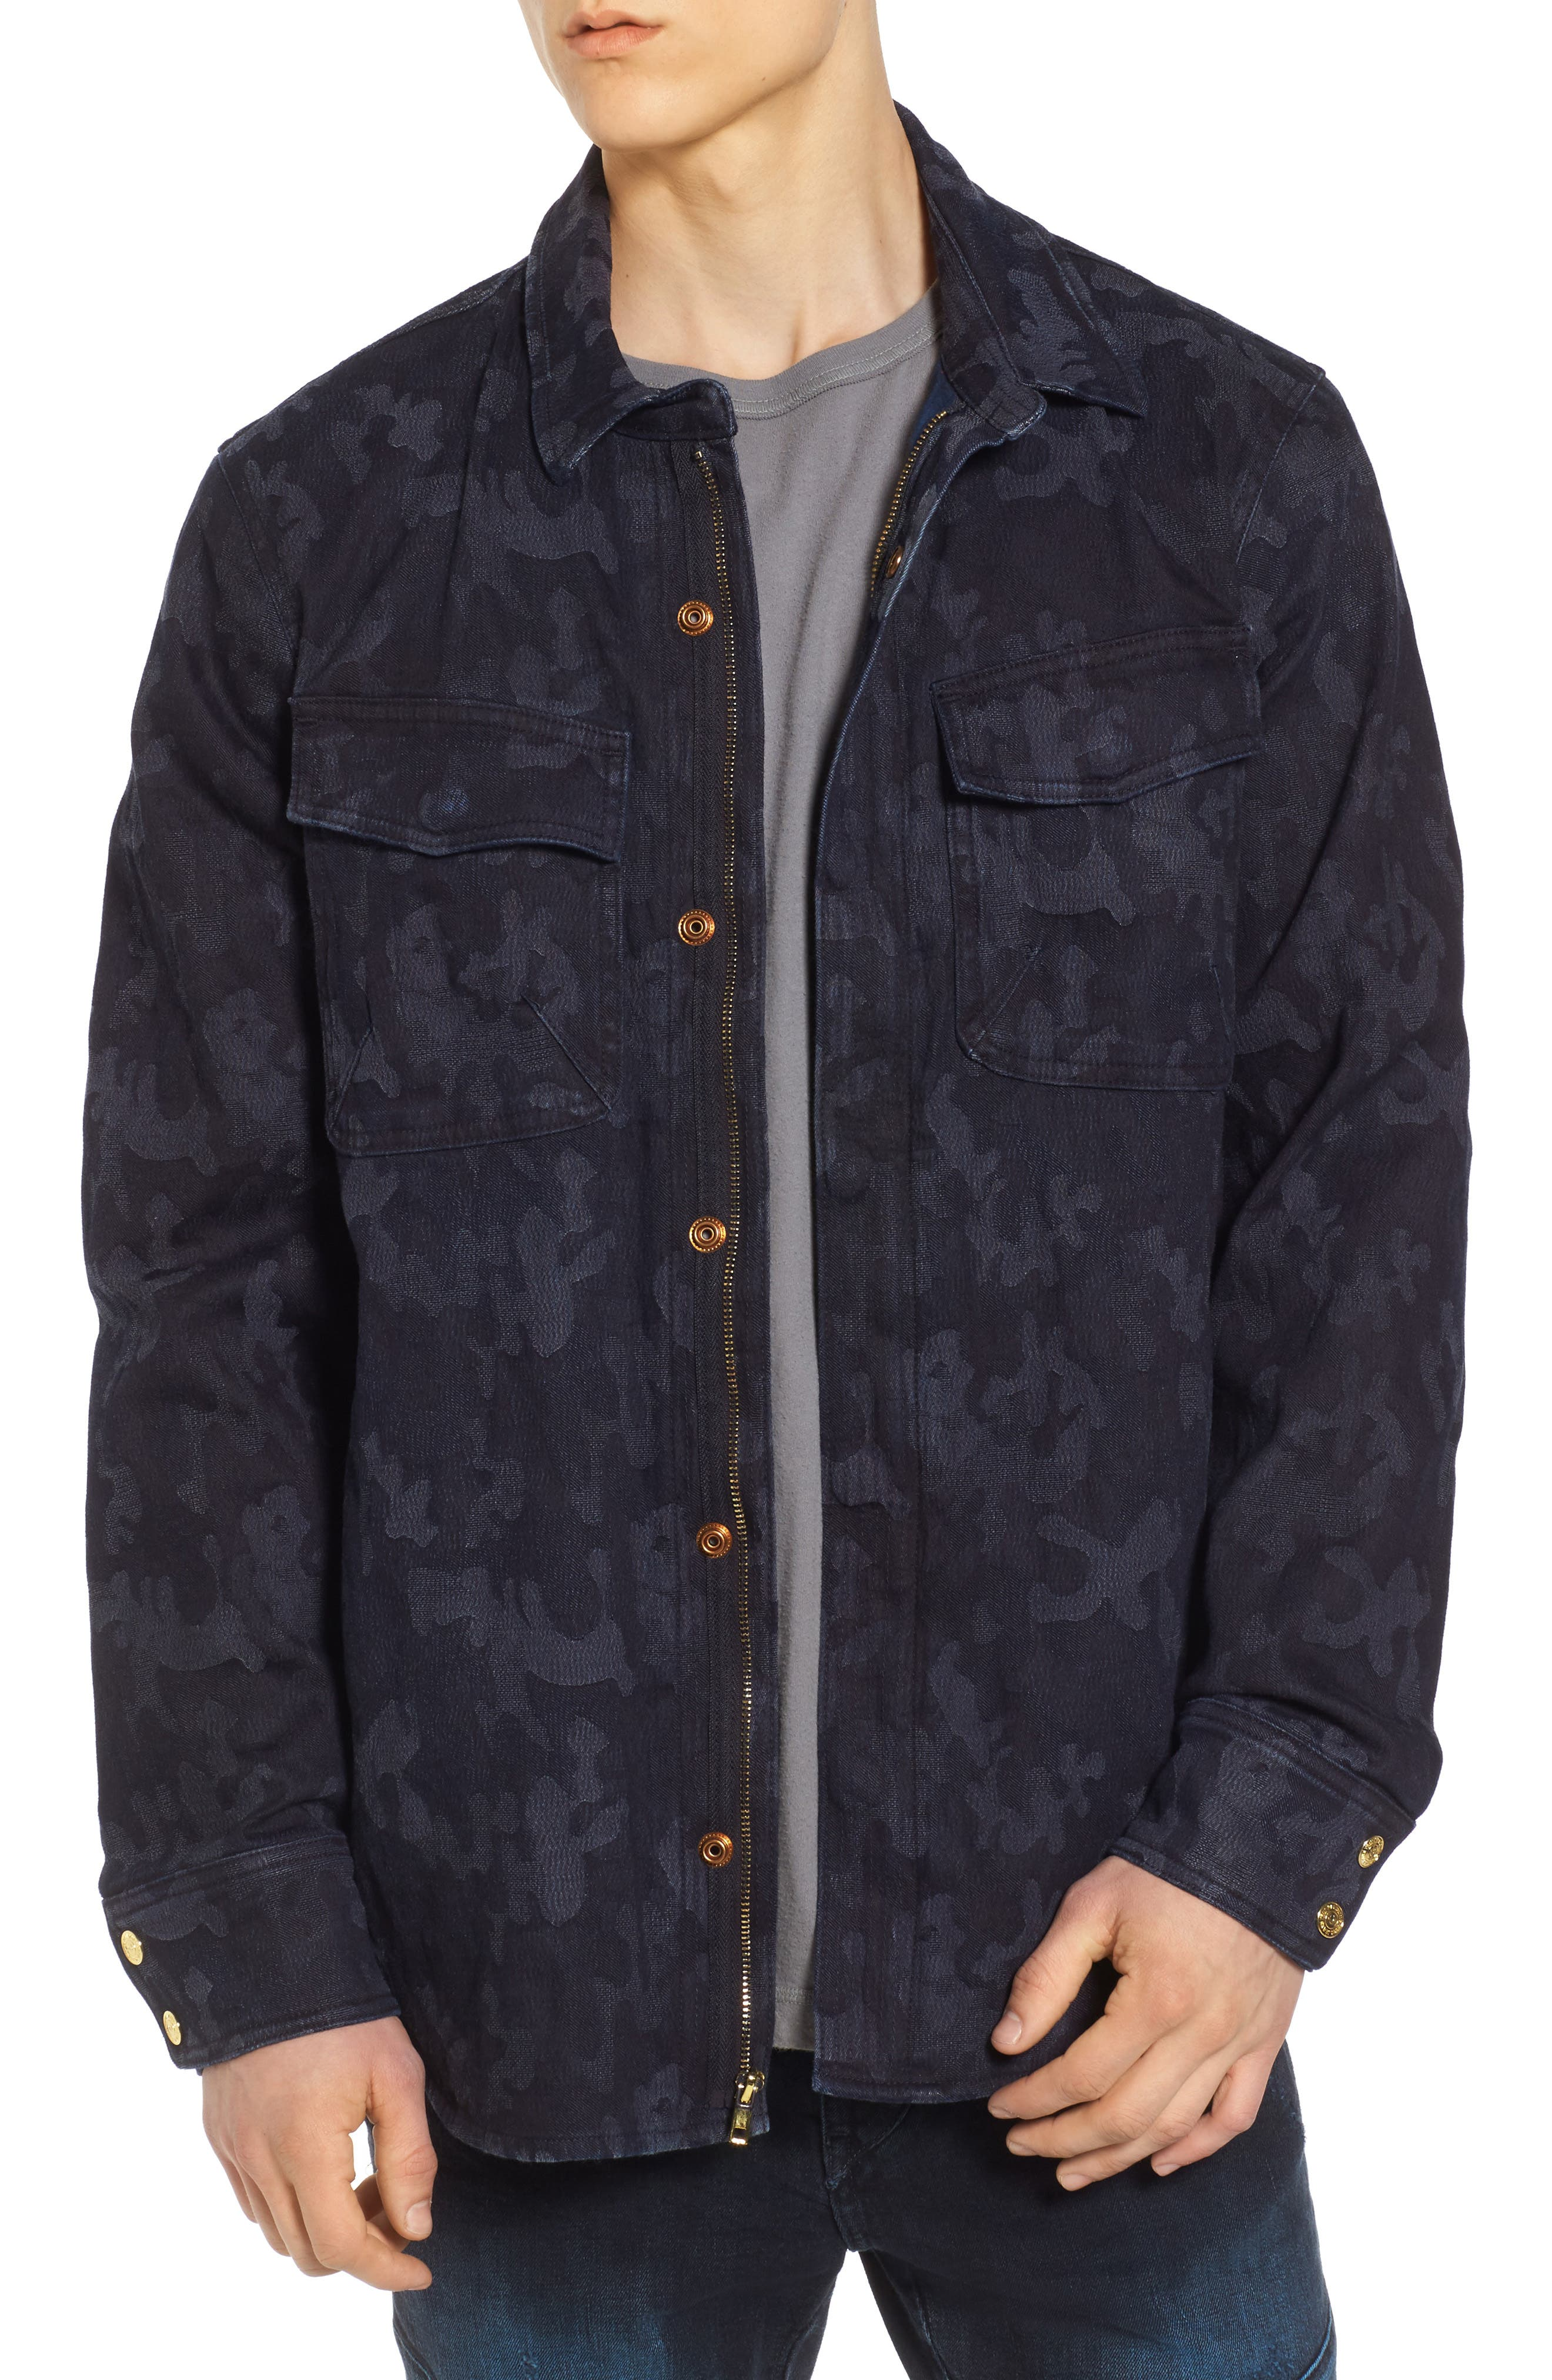 Alternate Image 1 Selected - True Religion Brand Jeans Camo Field Jacket